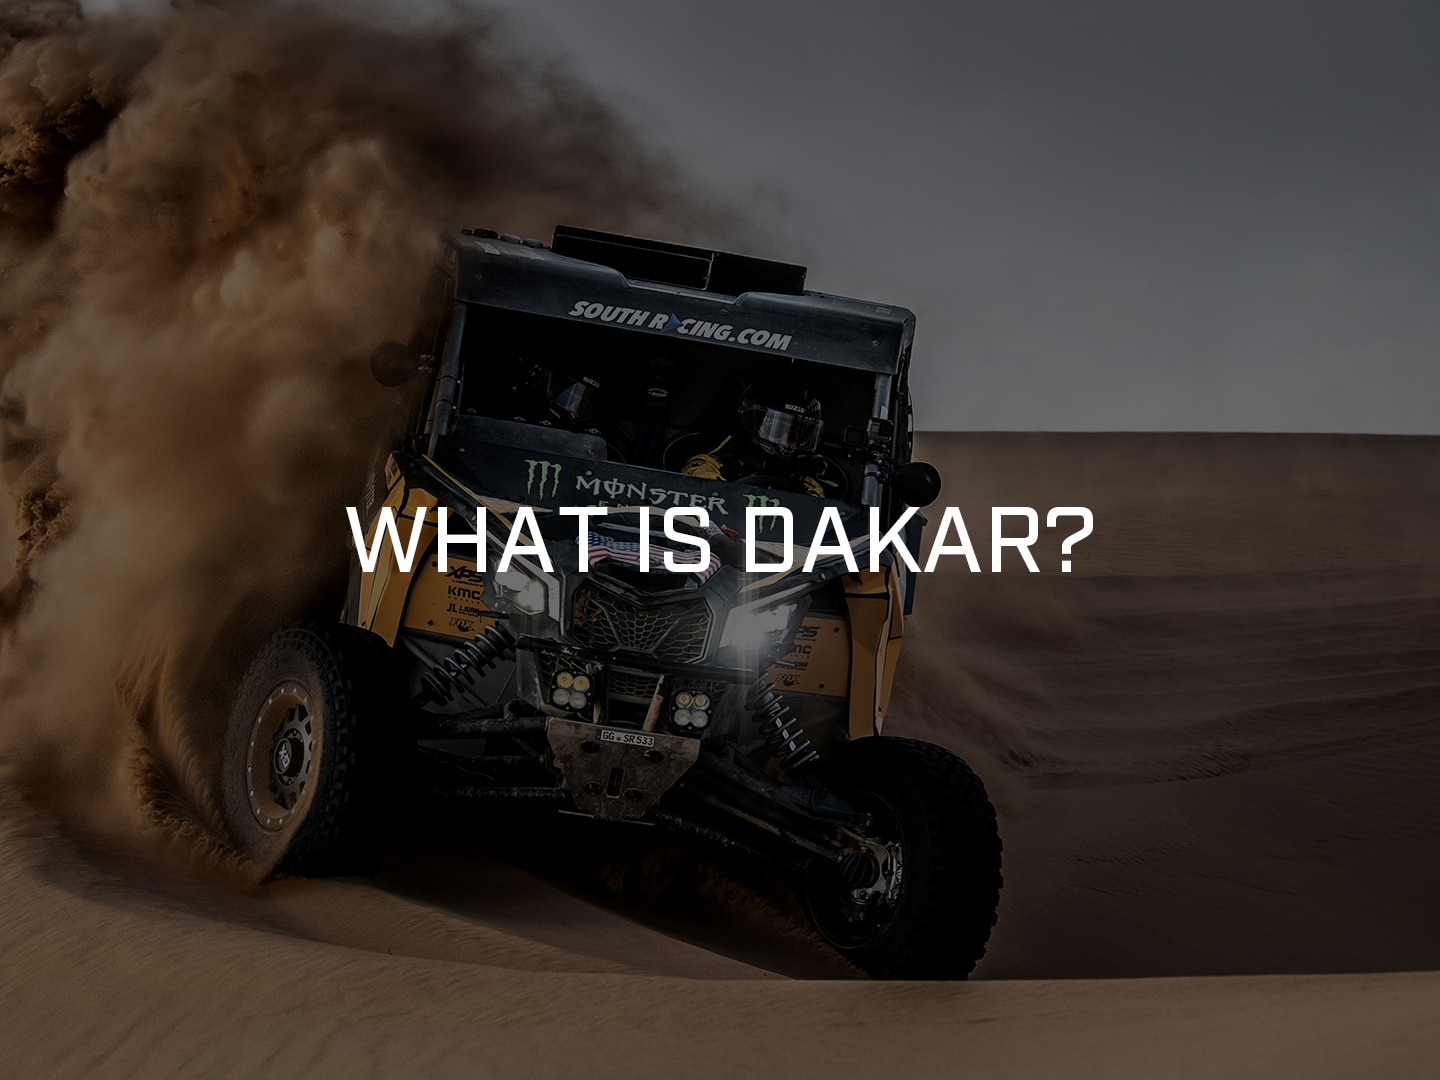 What is Dakar?